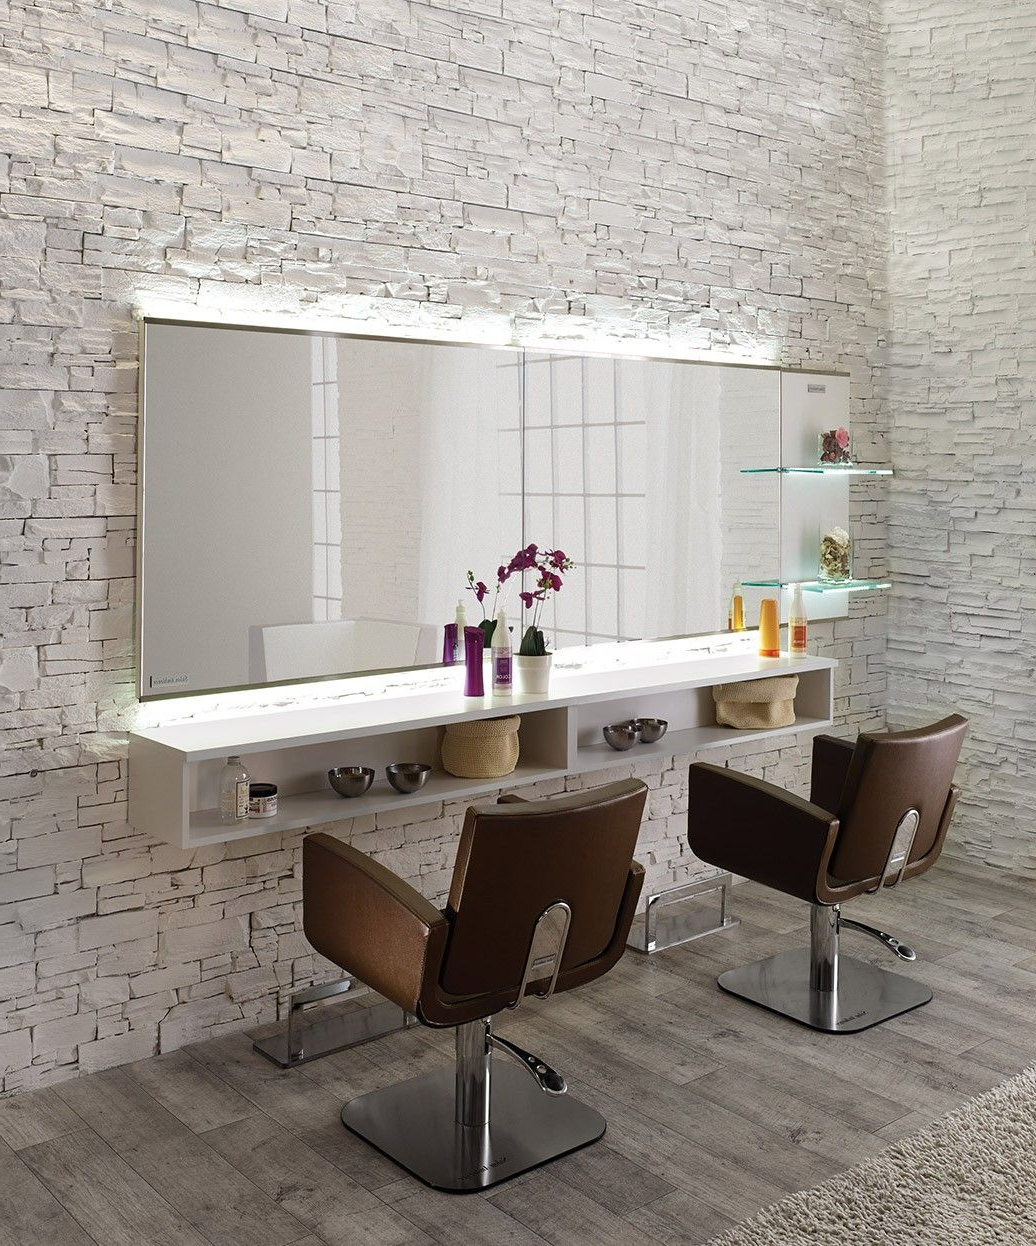 Salon Ambience Horizon Mirror Styling Station W/ Storage Throughout 2020 Salon Wall Mirrors (View 12 of 20)